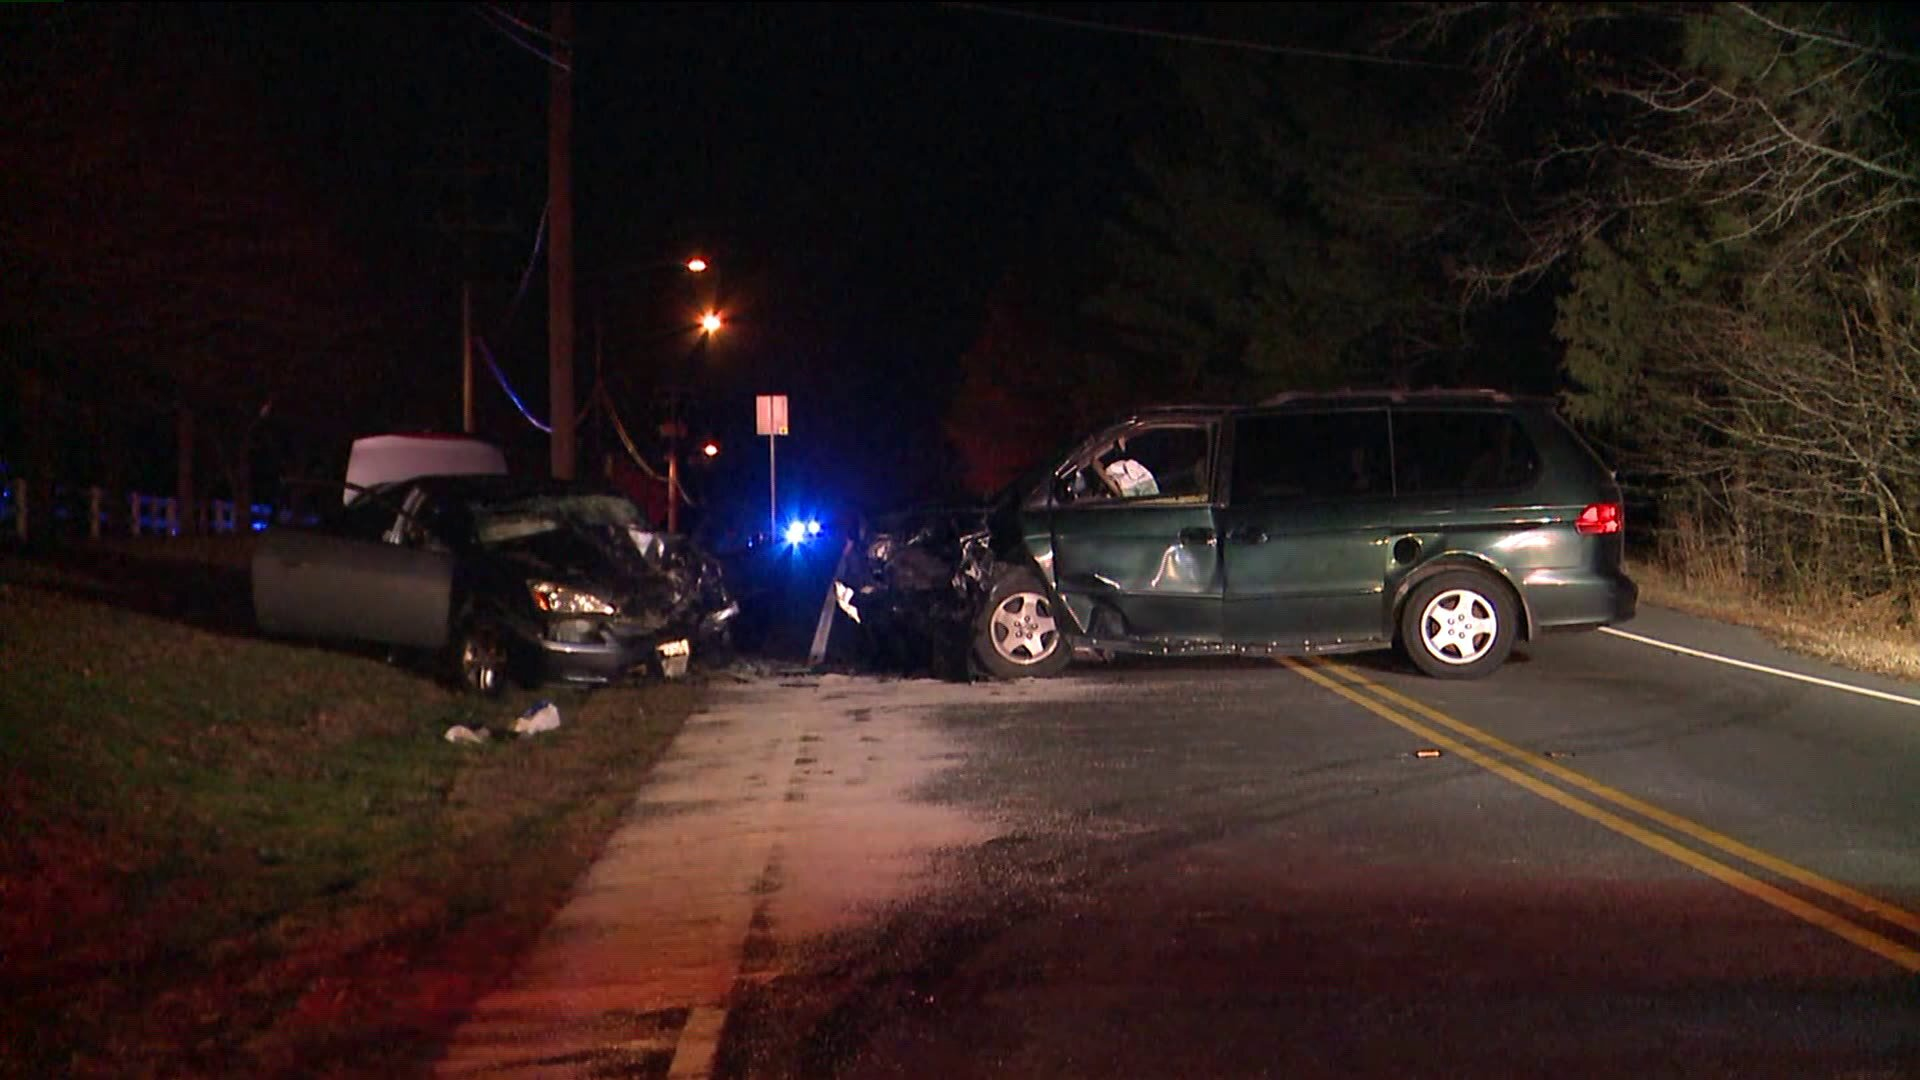 Photos: Four injured in head-on vehicle accident in NewportNews